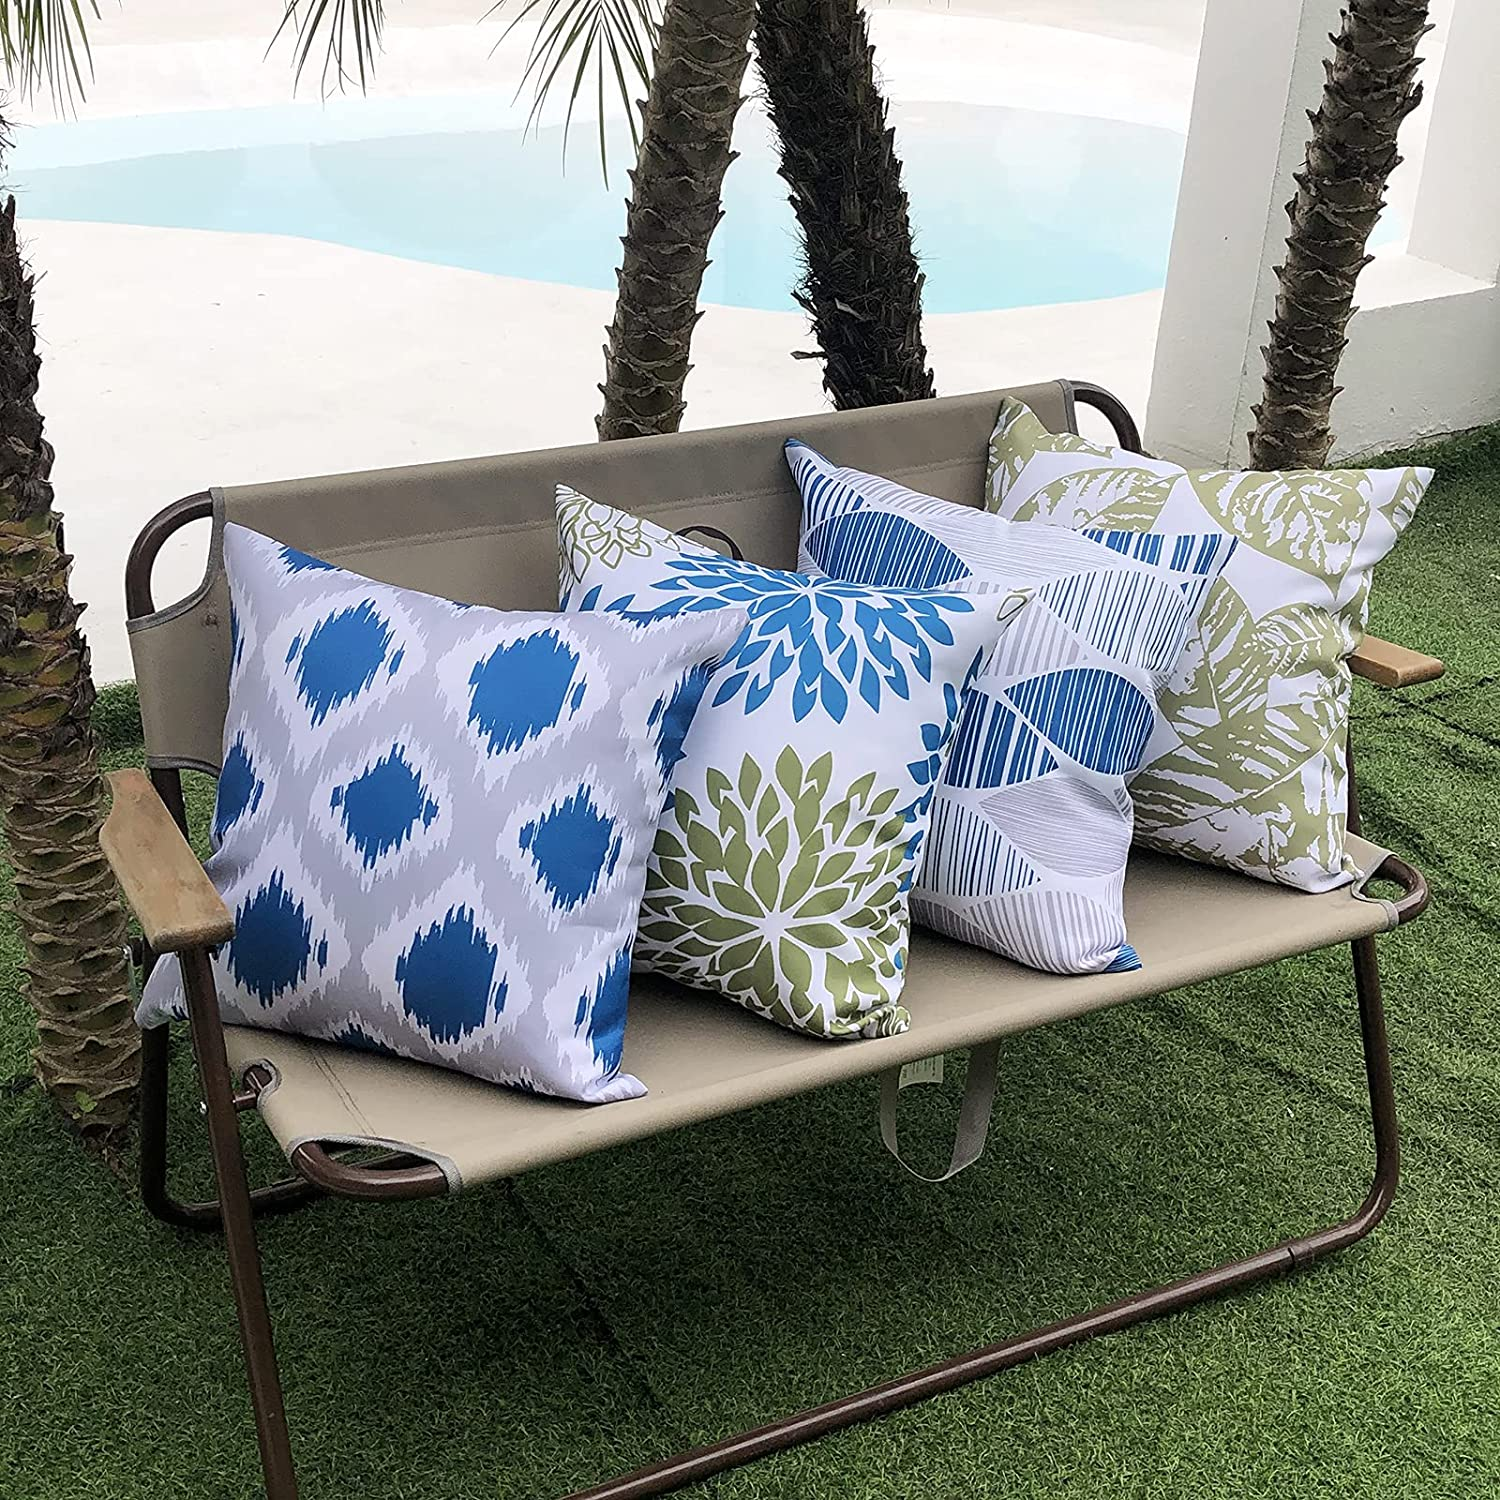 Hckot Set of 4 Outdoor Pillow Covers 18x18 inch Waterproof, Leaf Floral Printed Decorative Pillows Waterproof Outdoor Pillows Covers for Patio Furniture Couch,Blue